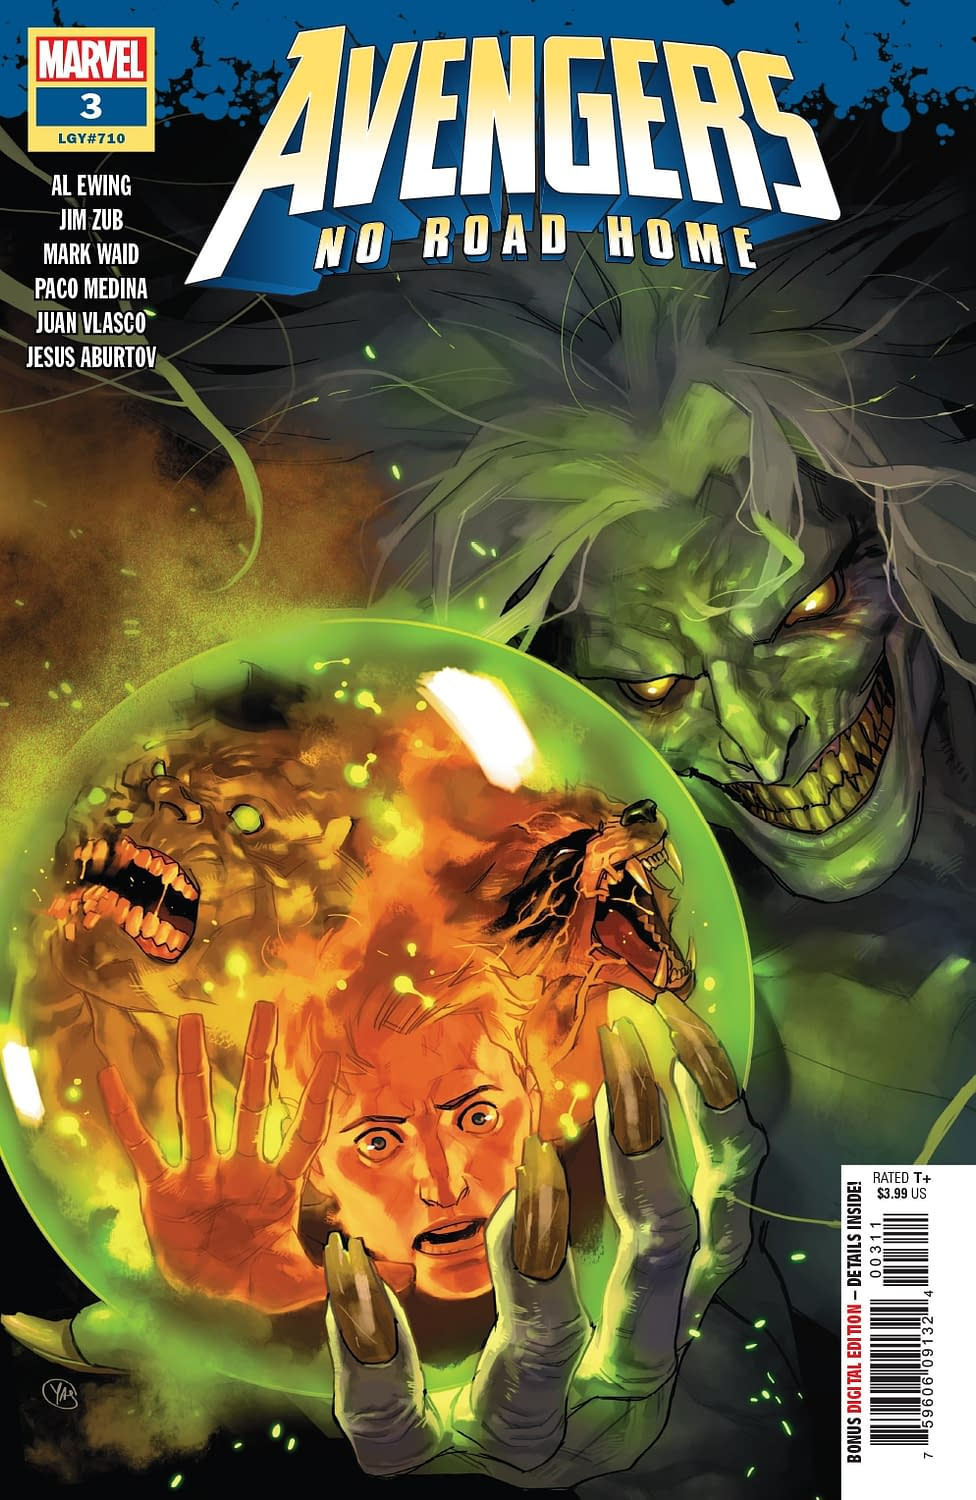 Can Rocket Raccoon Beat the Immortal Hulk in Next Week's No Road Home #3?